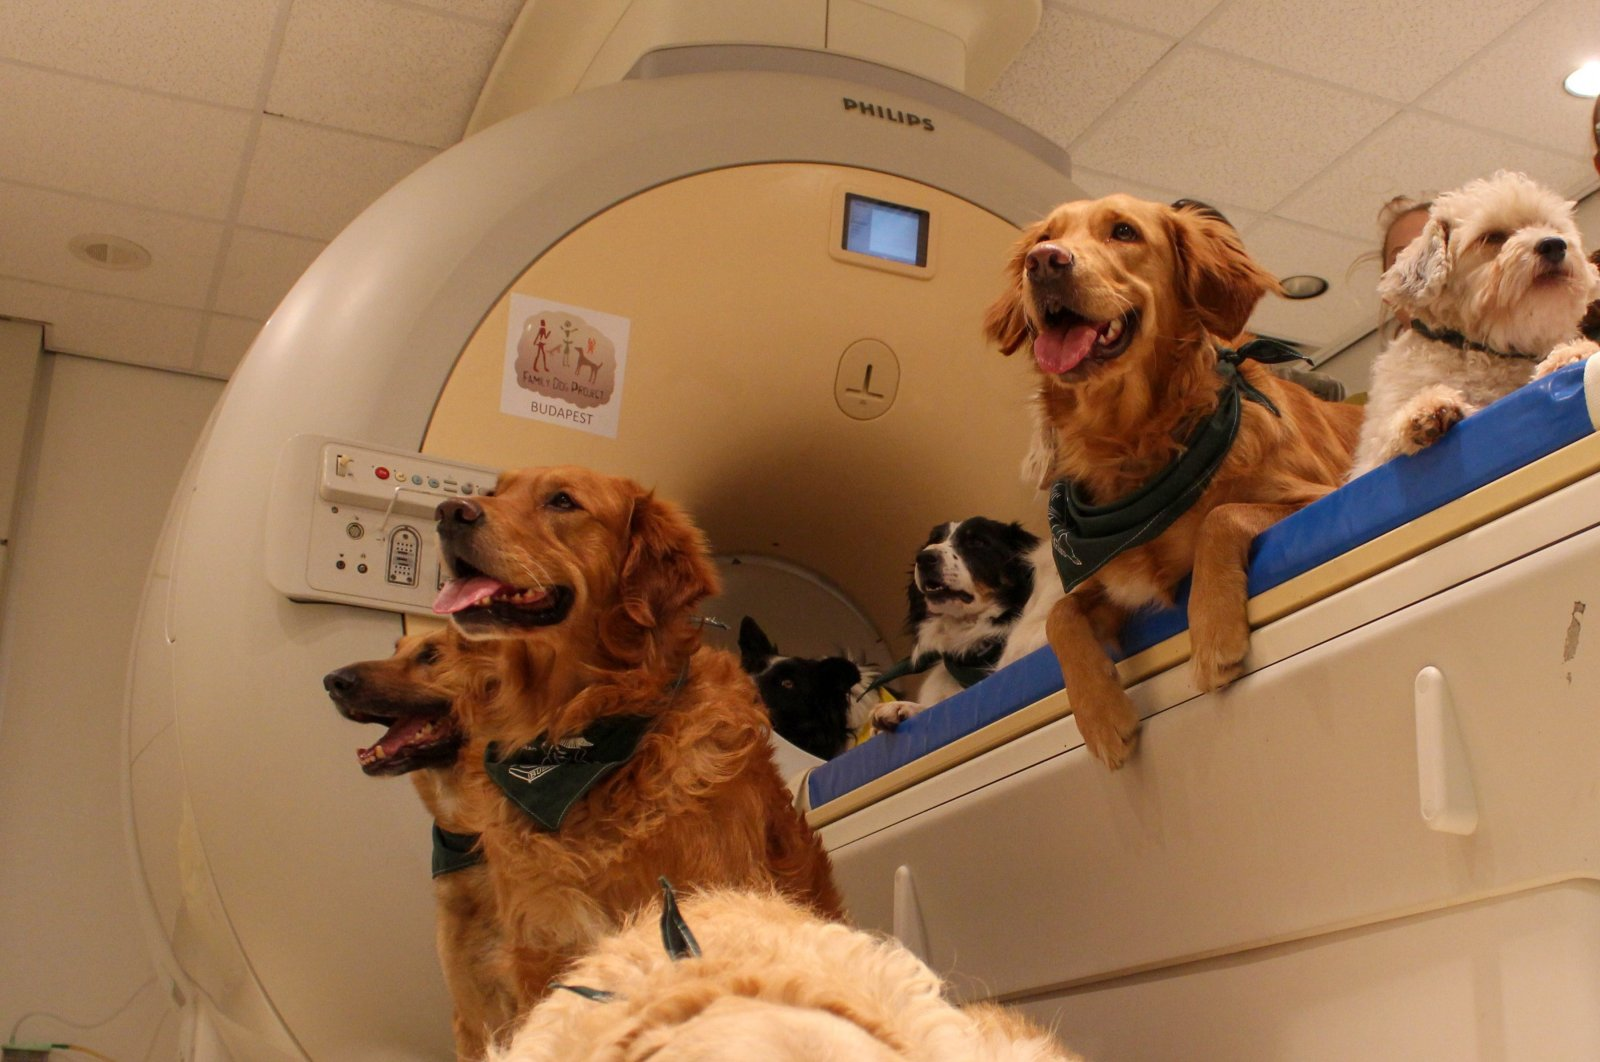 Dogs wait for an examination at an MR scanner at Eotvos Lorand University in Budapest, Hungary, Feb/ 11, 2016. (AFP Photo)